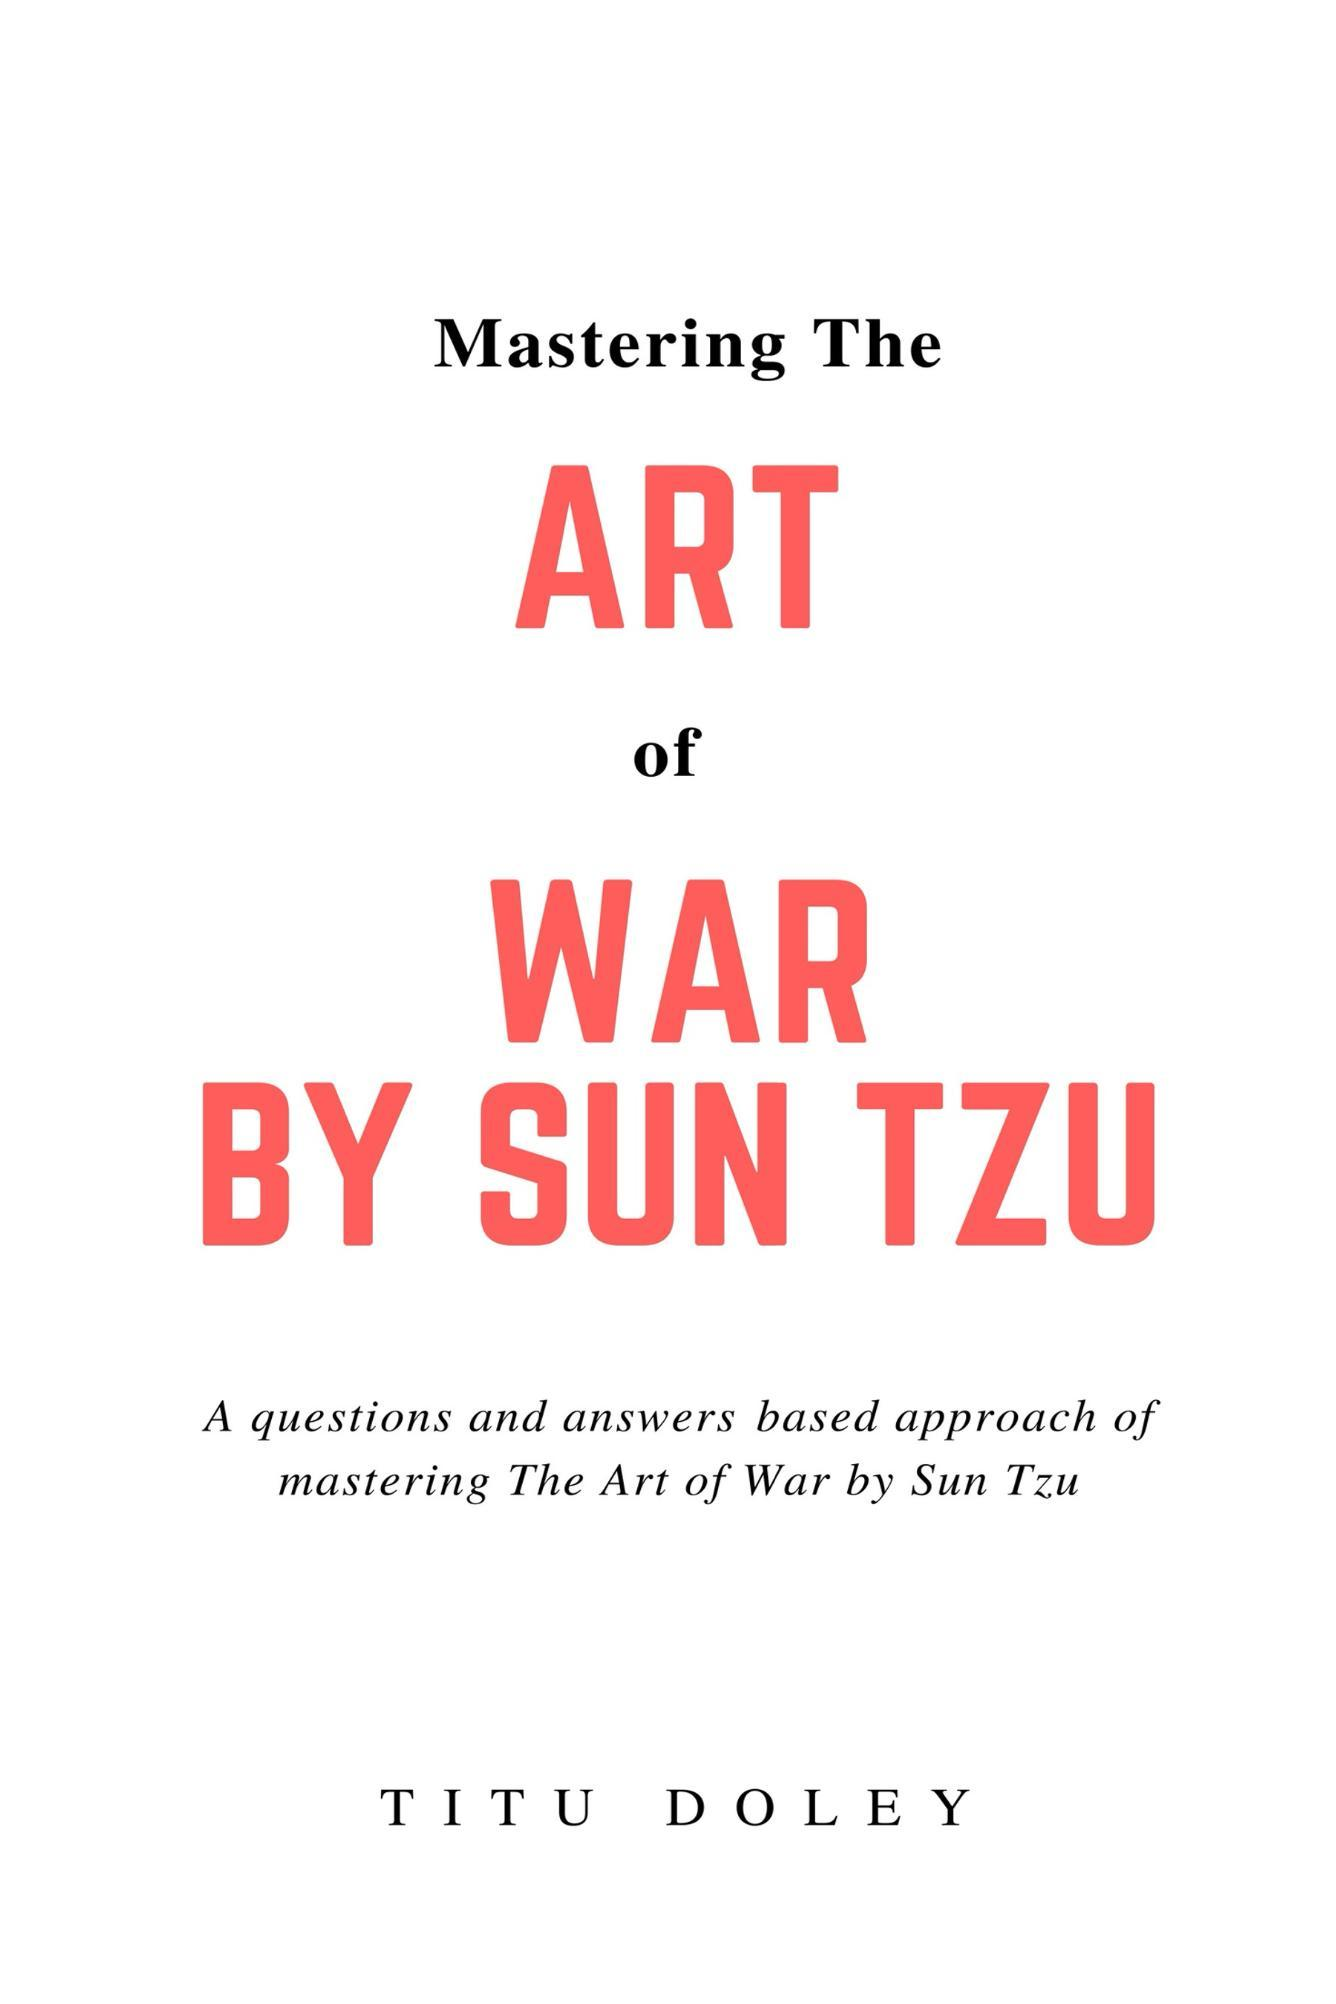 Mastering The Art of War by Sun Tzu